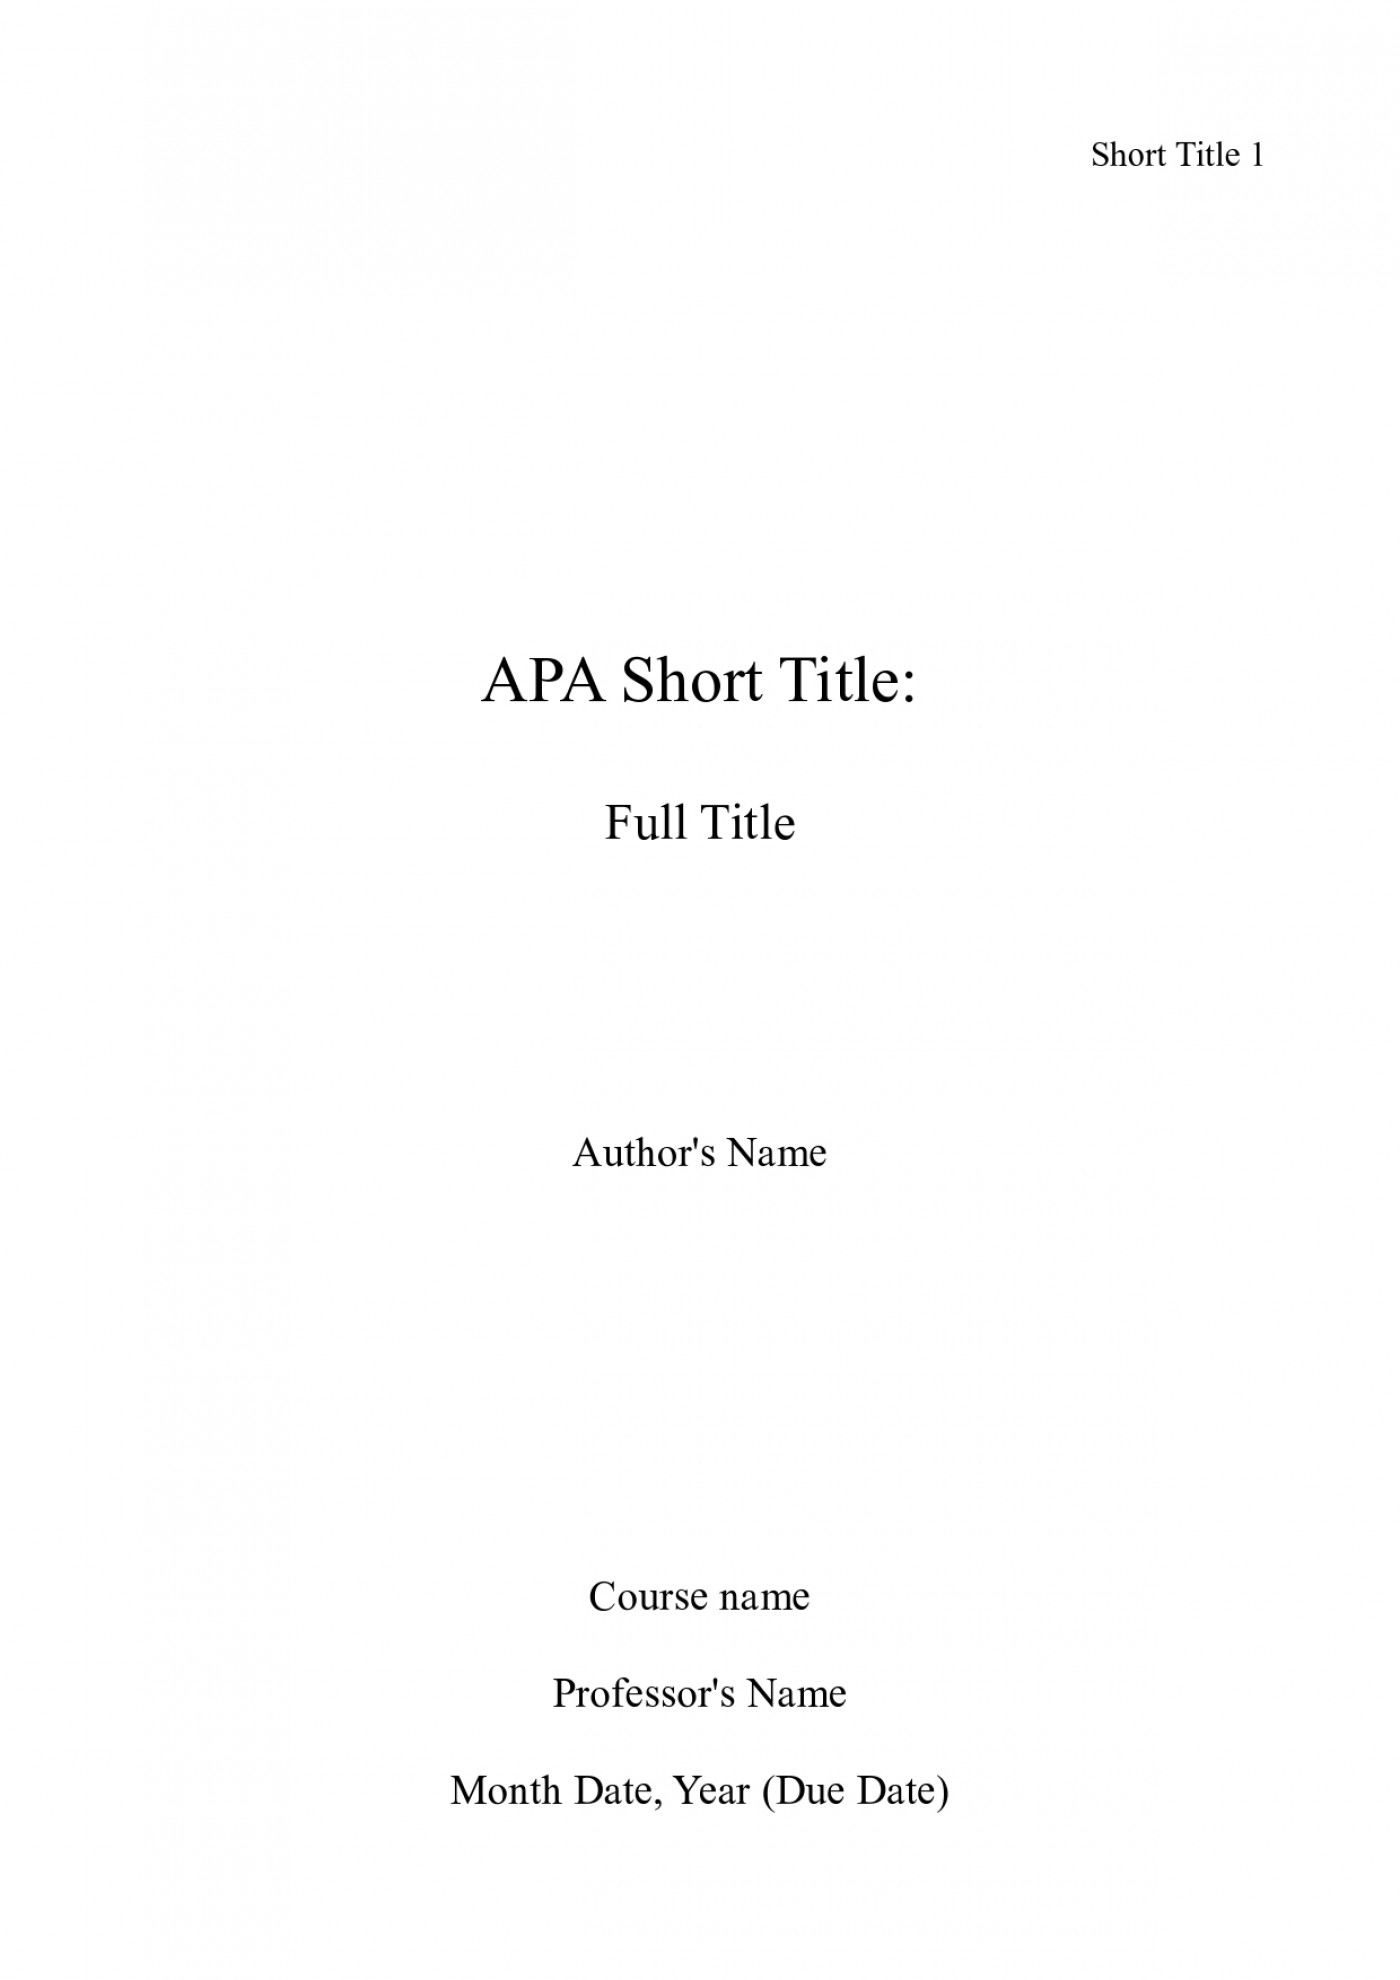 003 Front Page Of Term Paper Example Research Apa Title Unforgettable Sample 1400